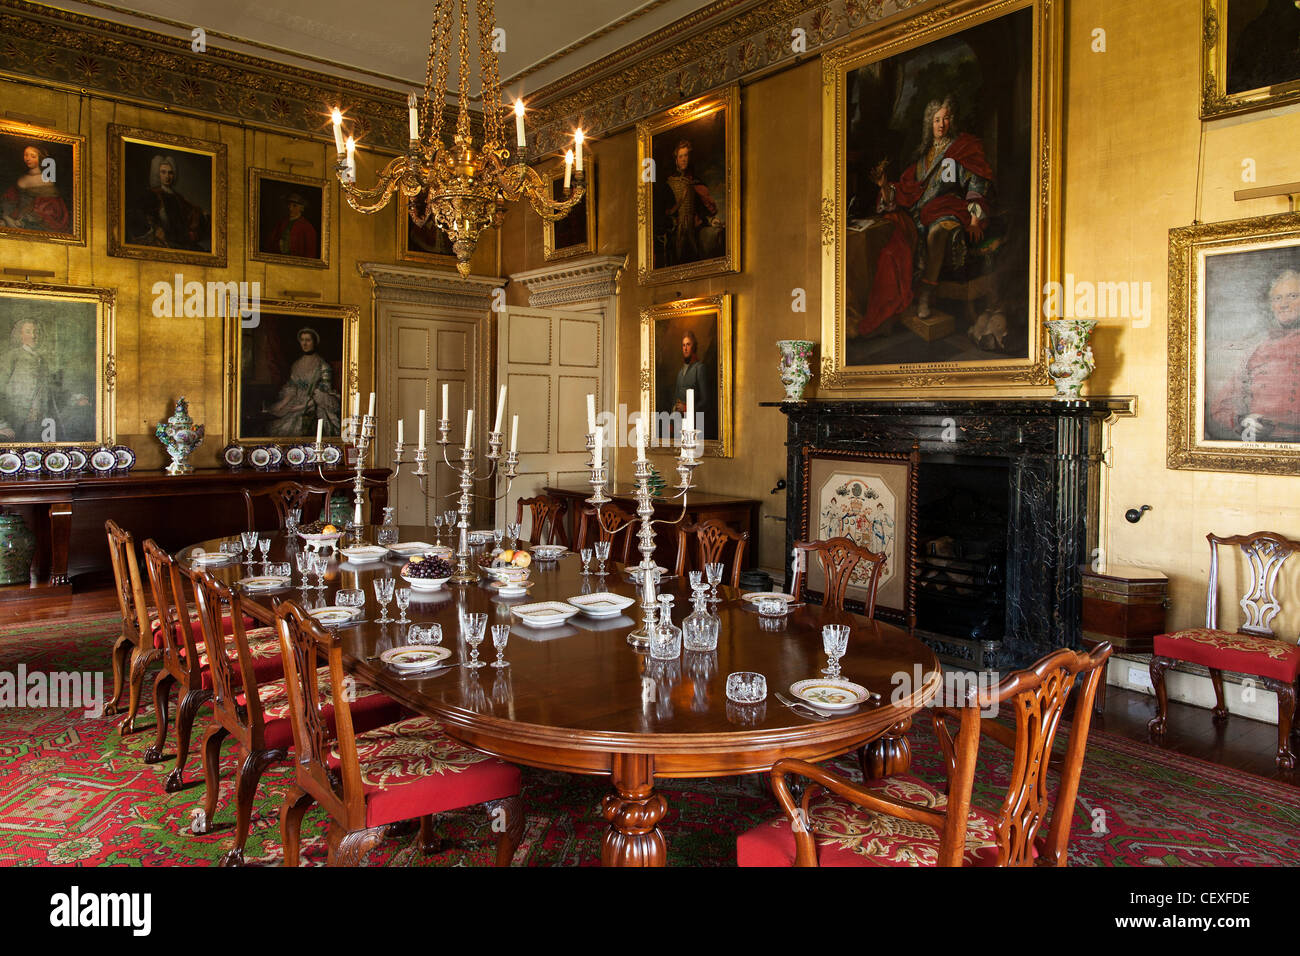 Interior Rooms Of The Stately Home Of Hopetoun House